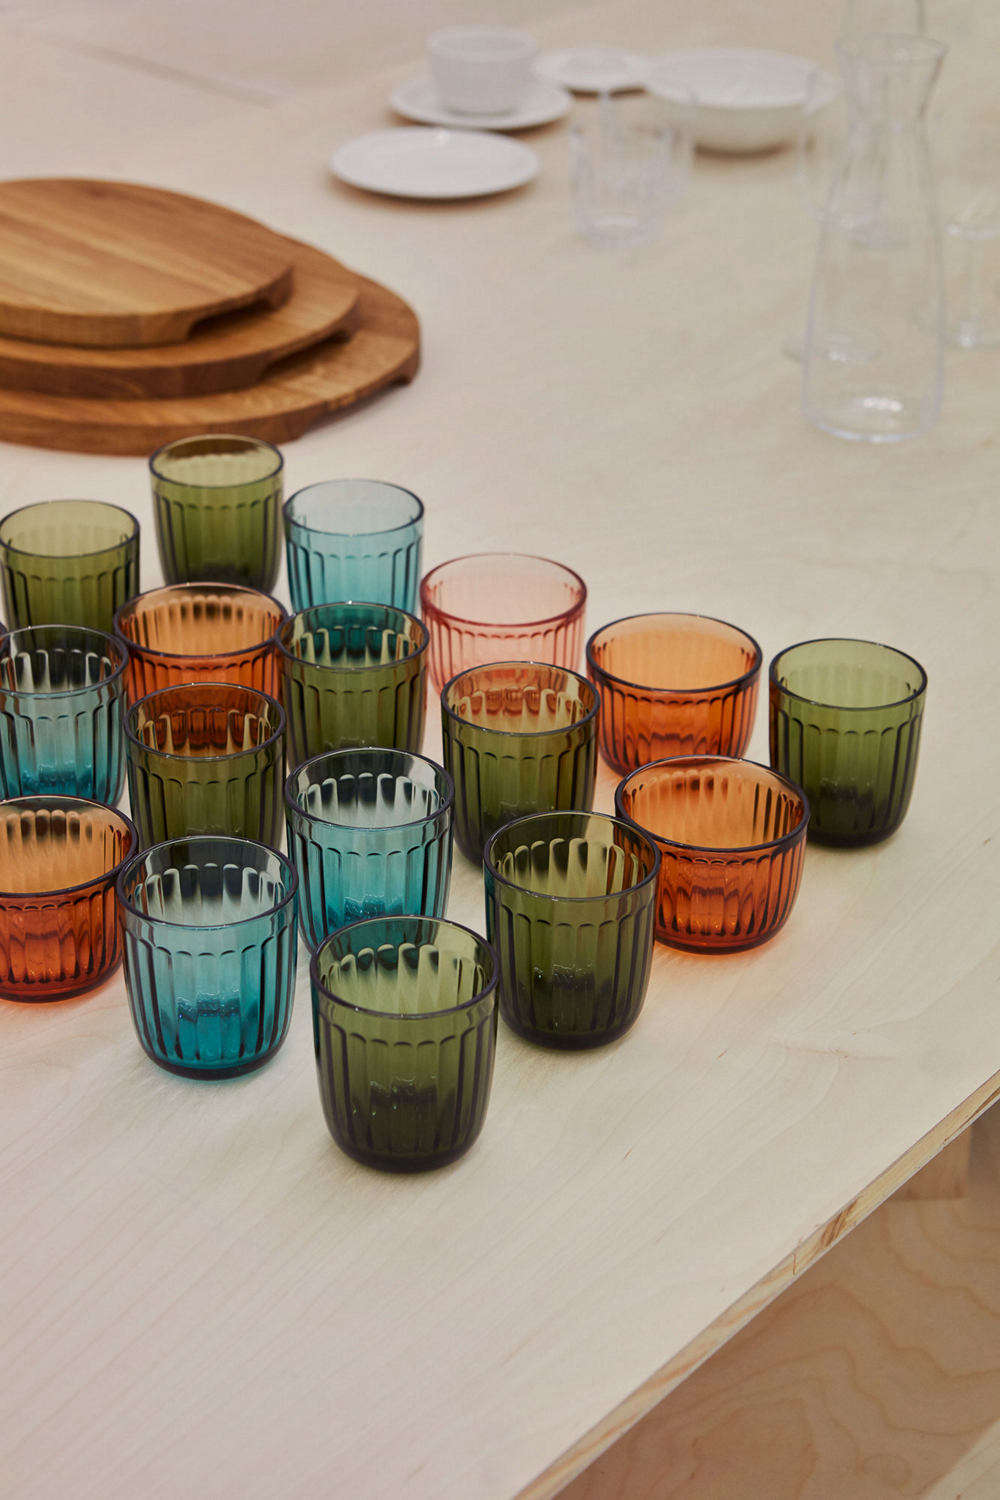 A suite of Raami Tumblers, available in moss green, sea blue, and clear recycled glass, is €